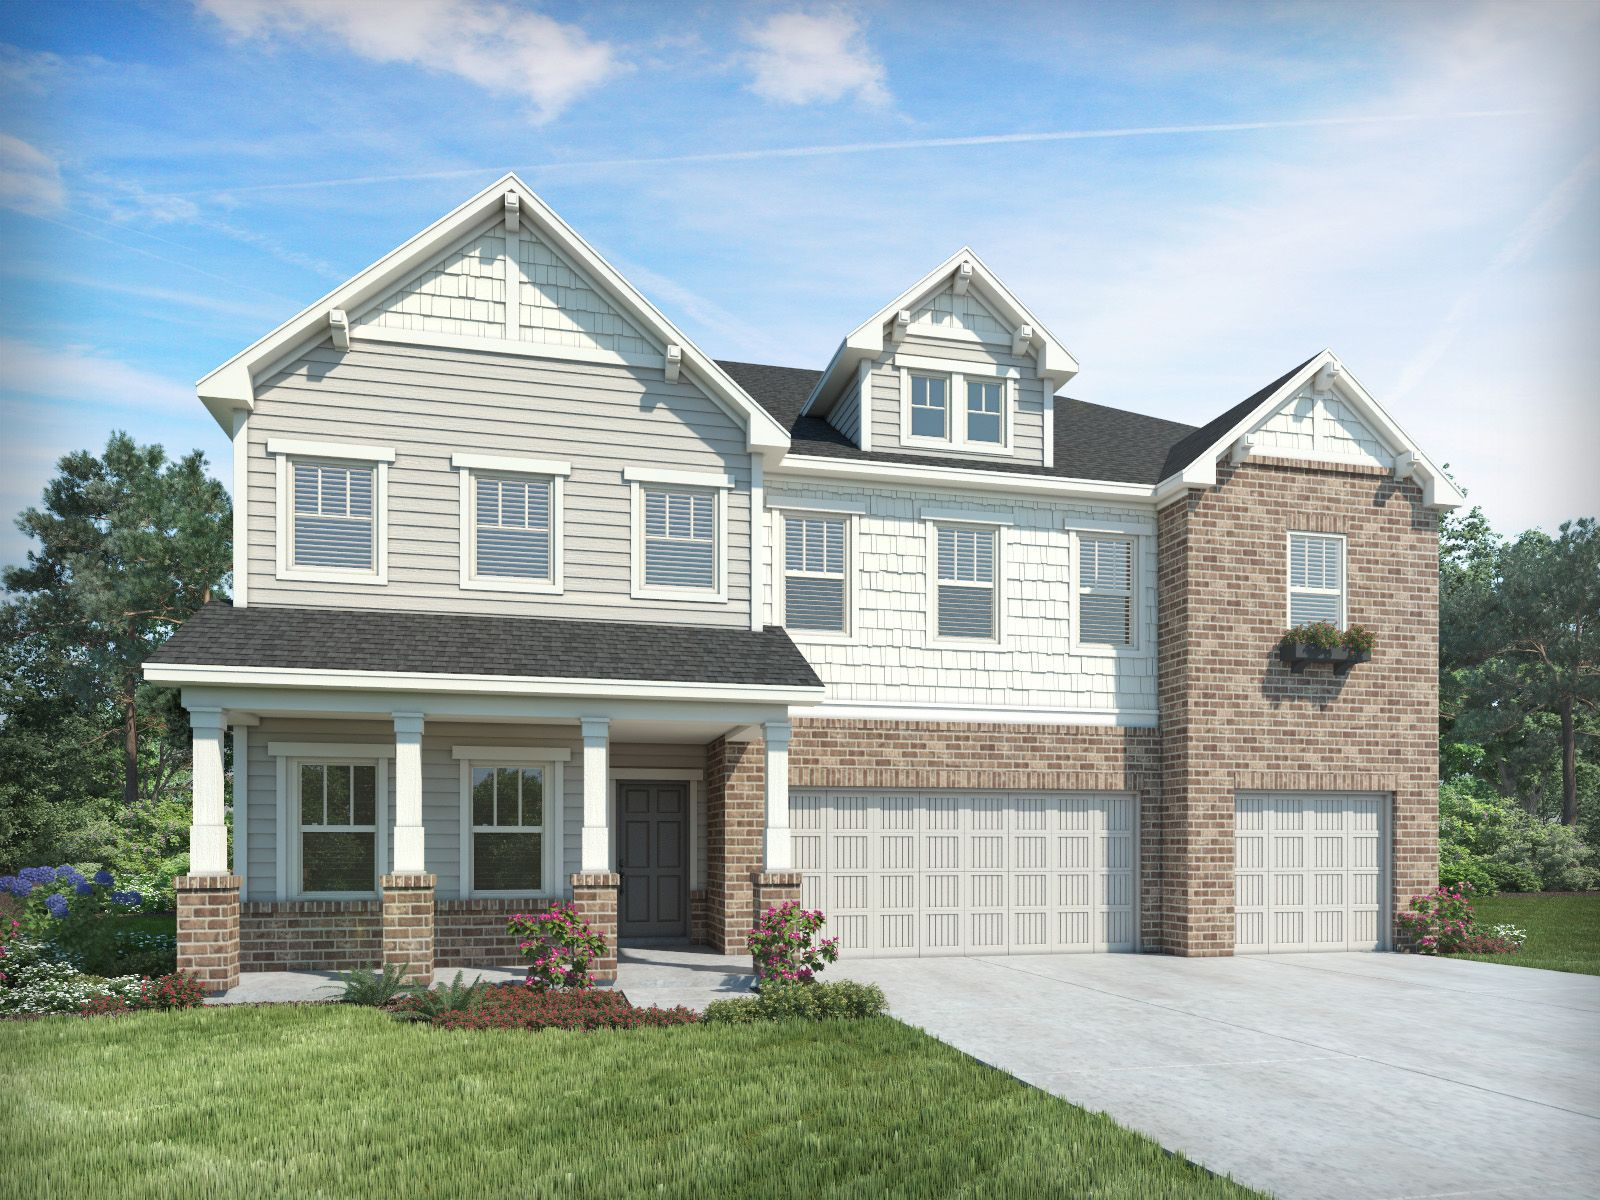 New homes in dawsonville ga homes for sale new home for New home sources